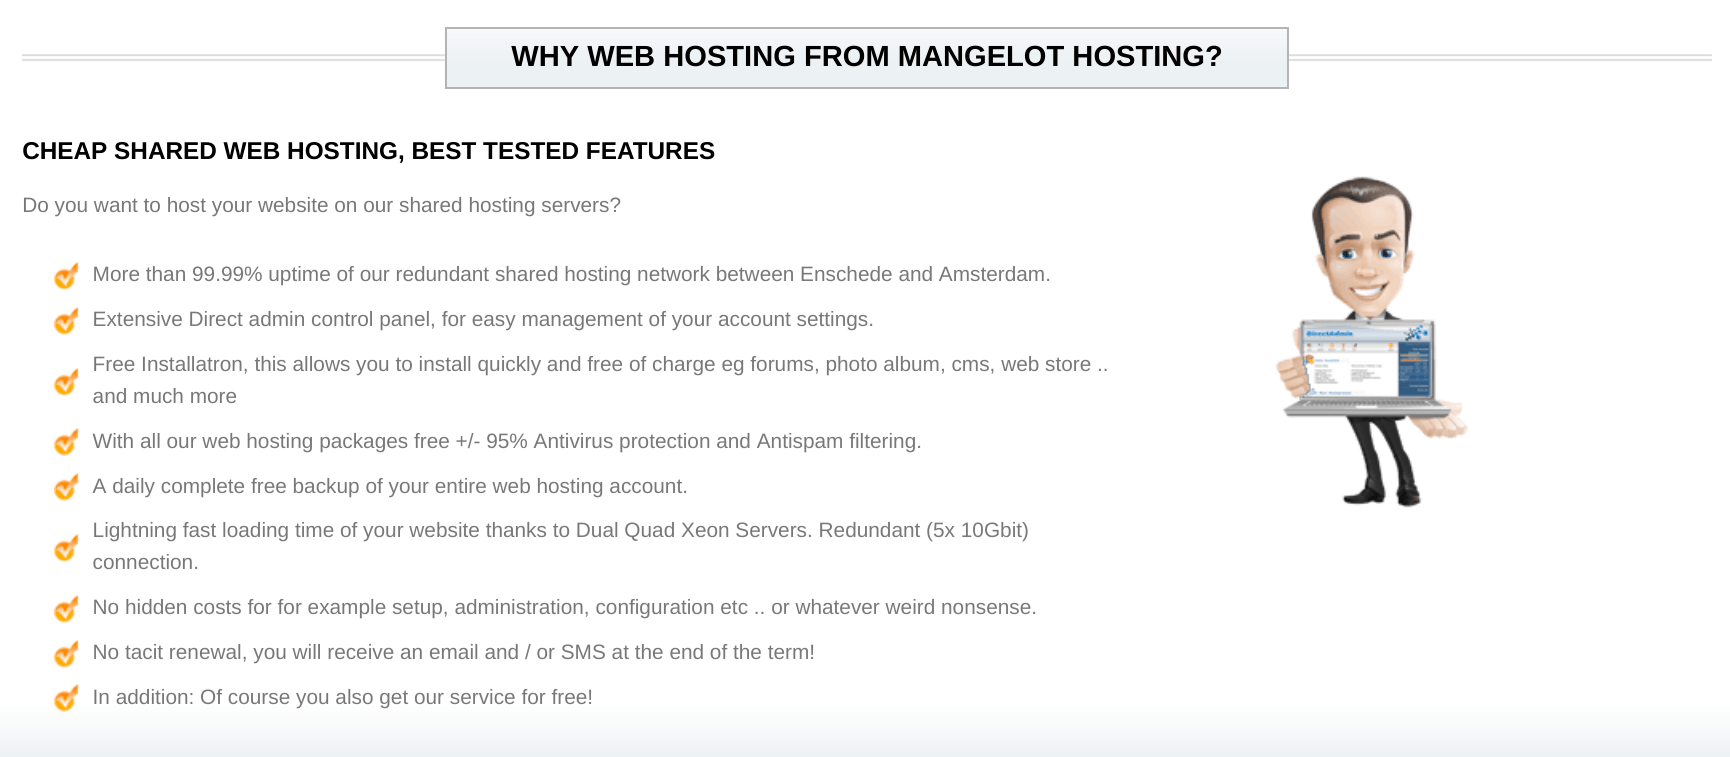 Mangelot Hosting-overview1